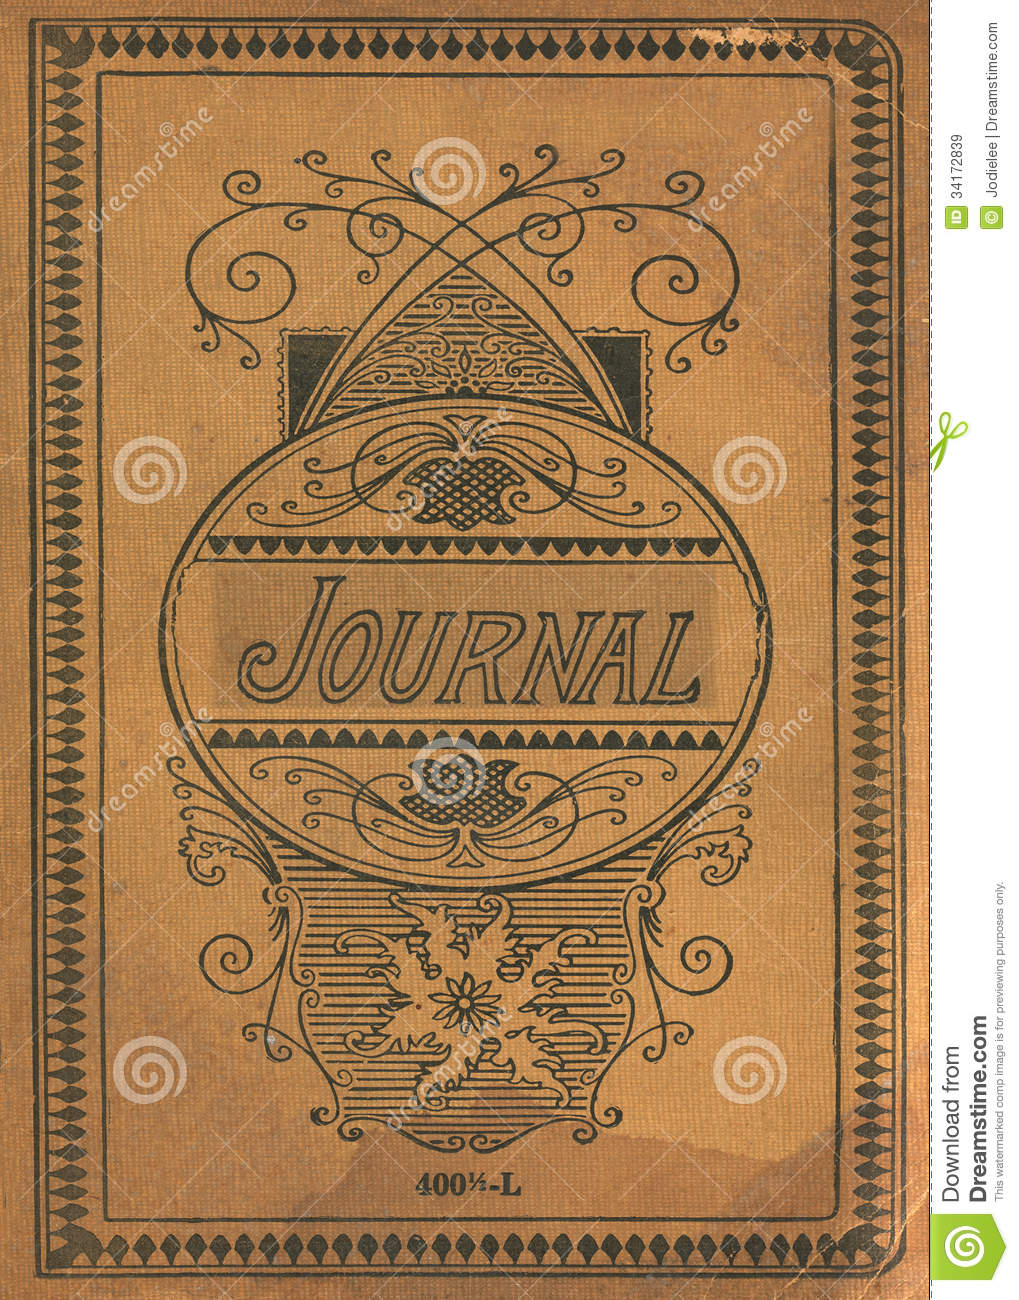 Vintage Book Cover Template : Antique vintage diary journal book cover stock image